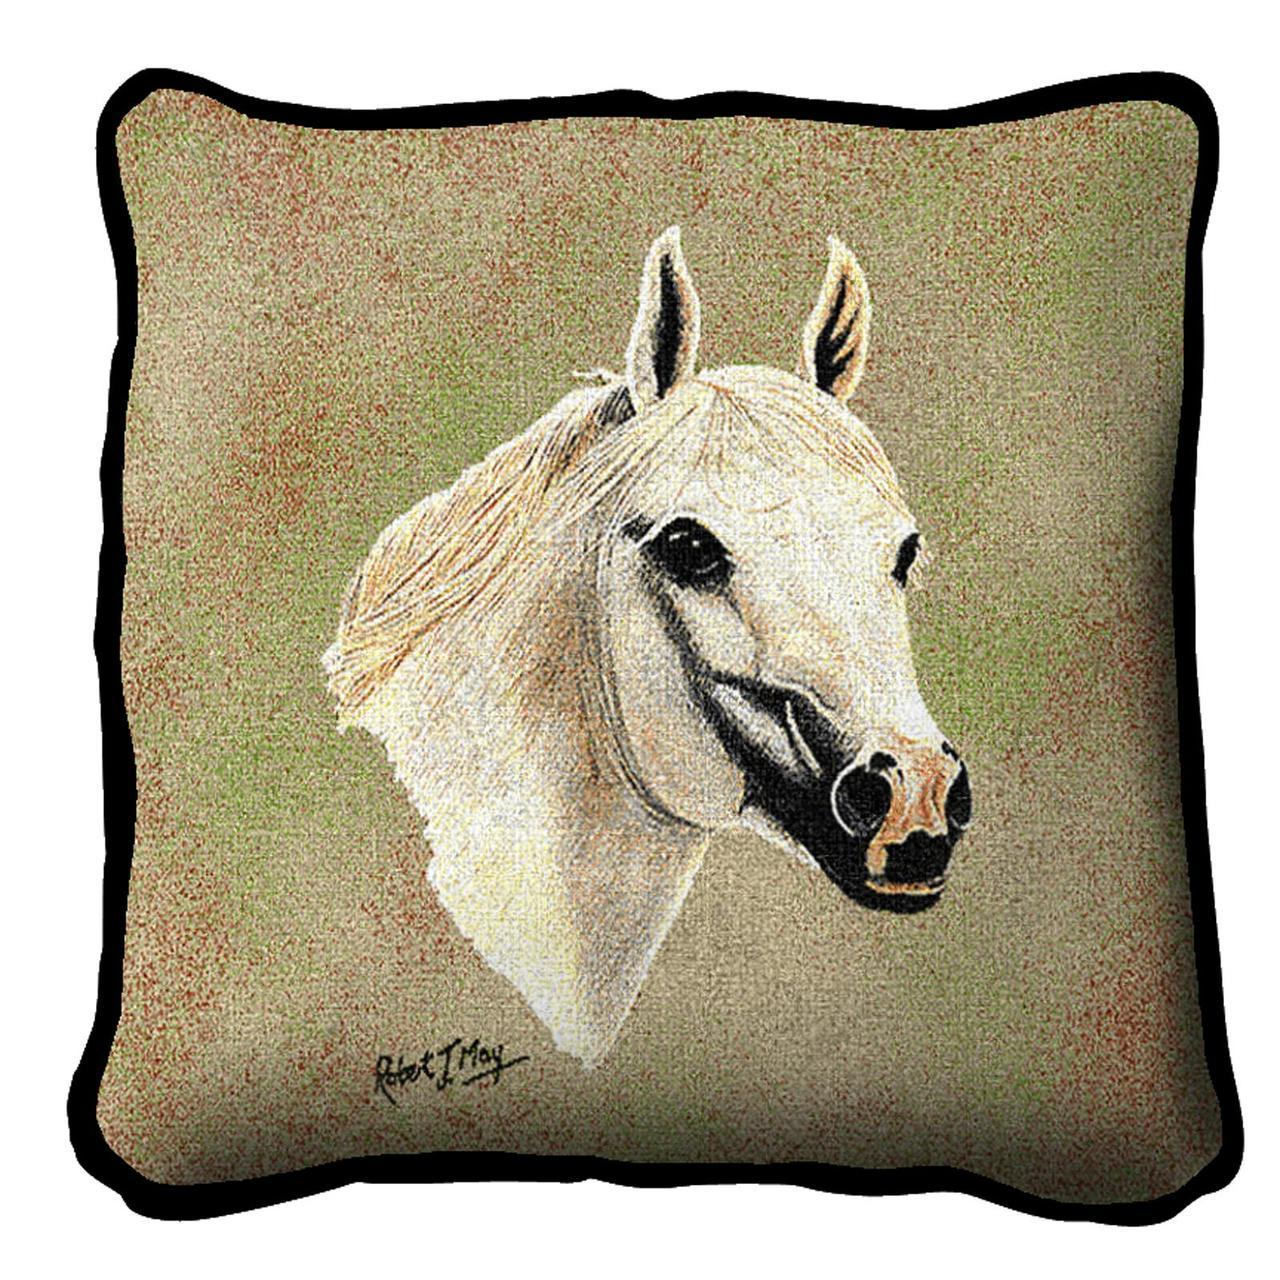 Throw Pillow-17 x 17-Animal Lover-White-Arabian Horse